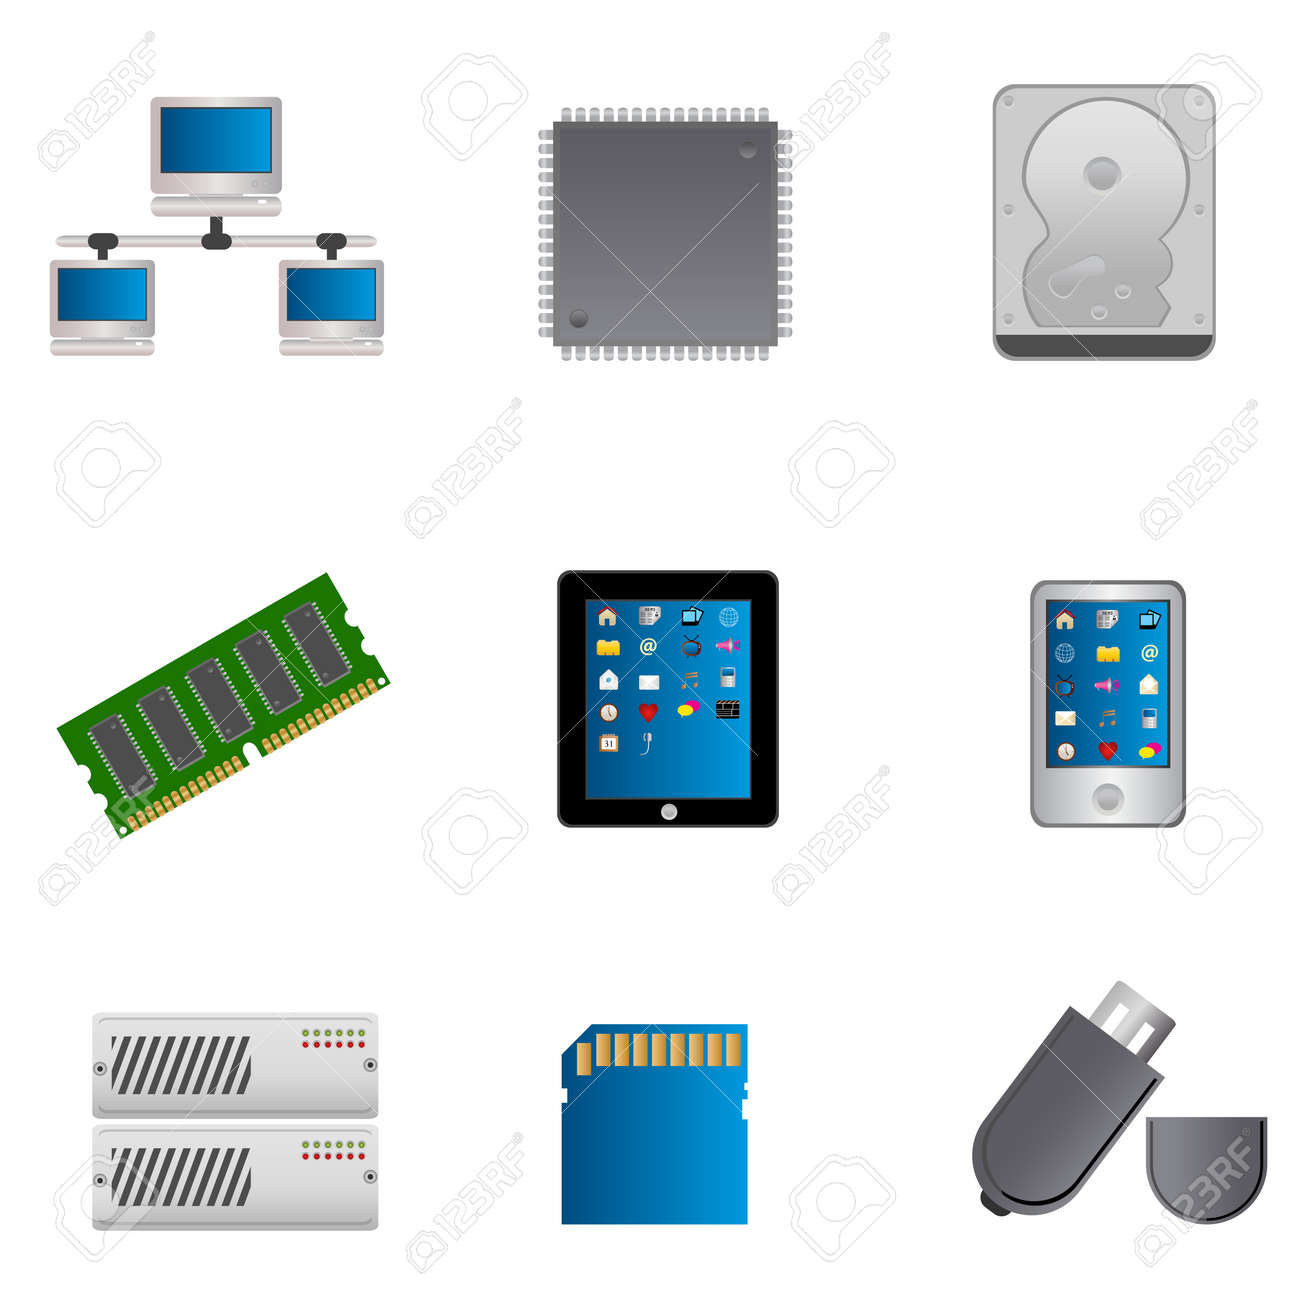 Computer parts and computers icon set Stock Vector - 10120316